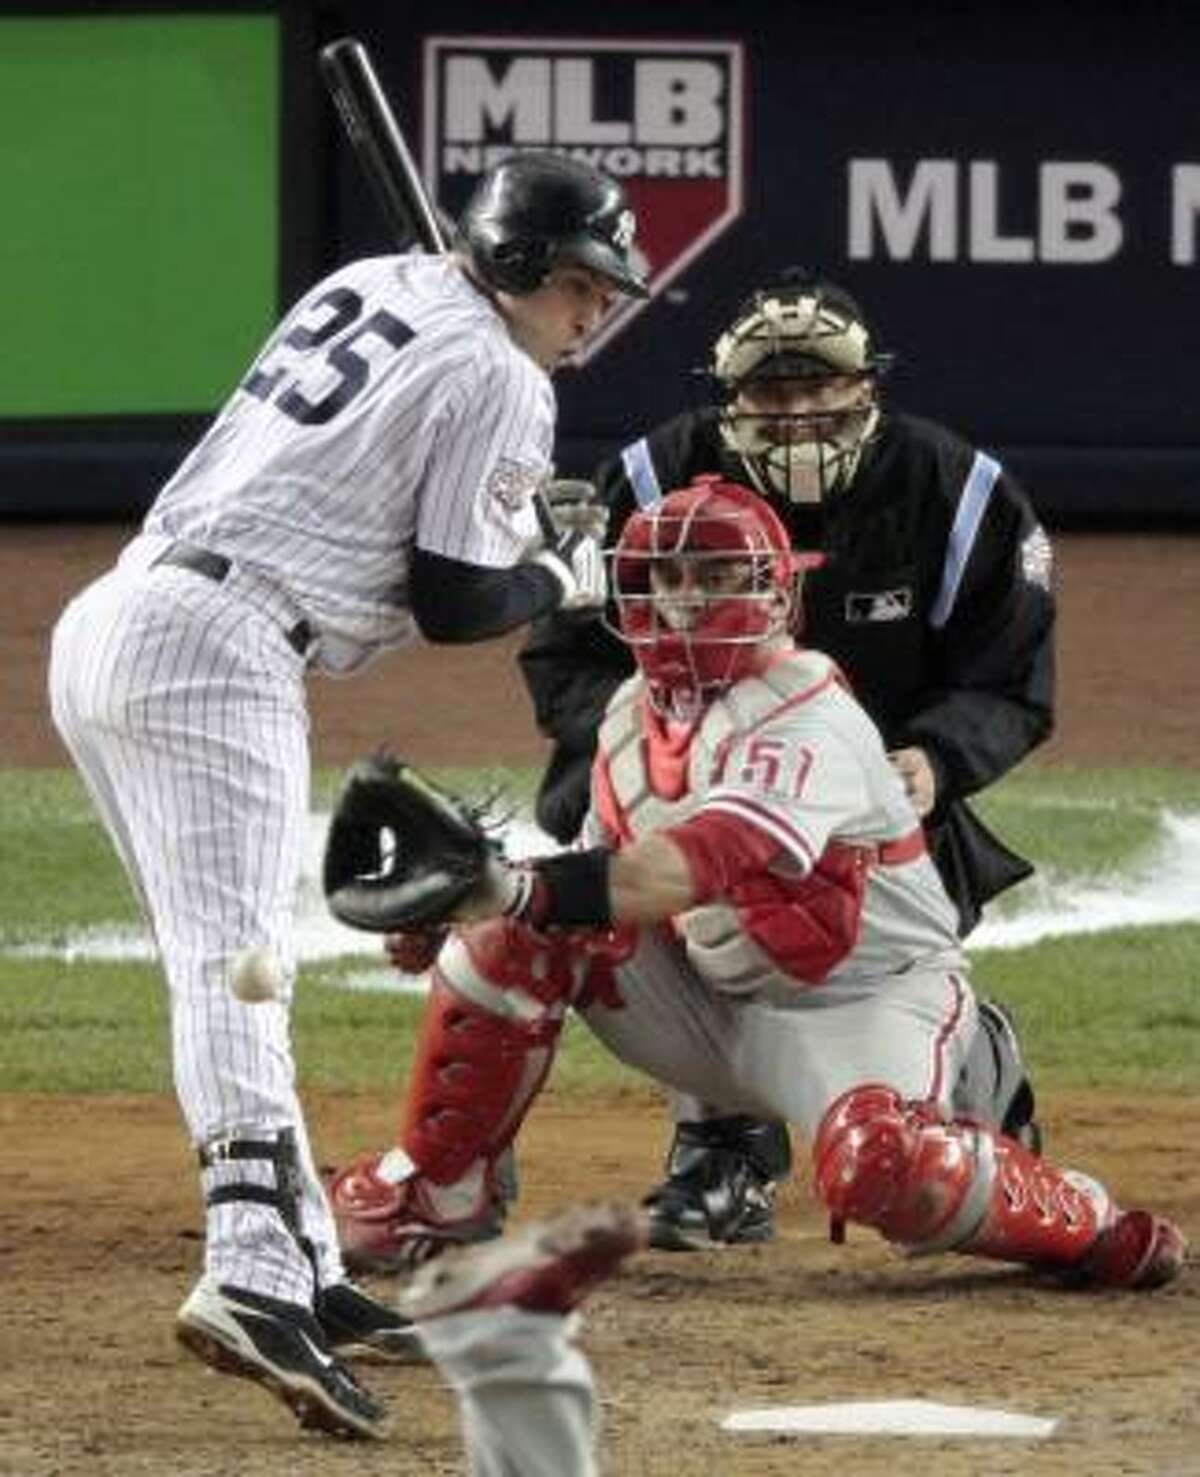 New York's Mark Teixeira is hit by a pitch during the eighth inning.